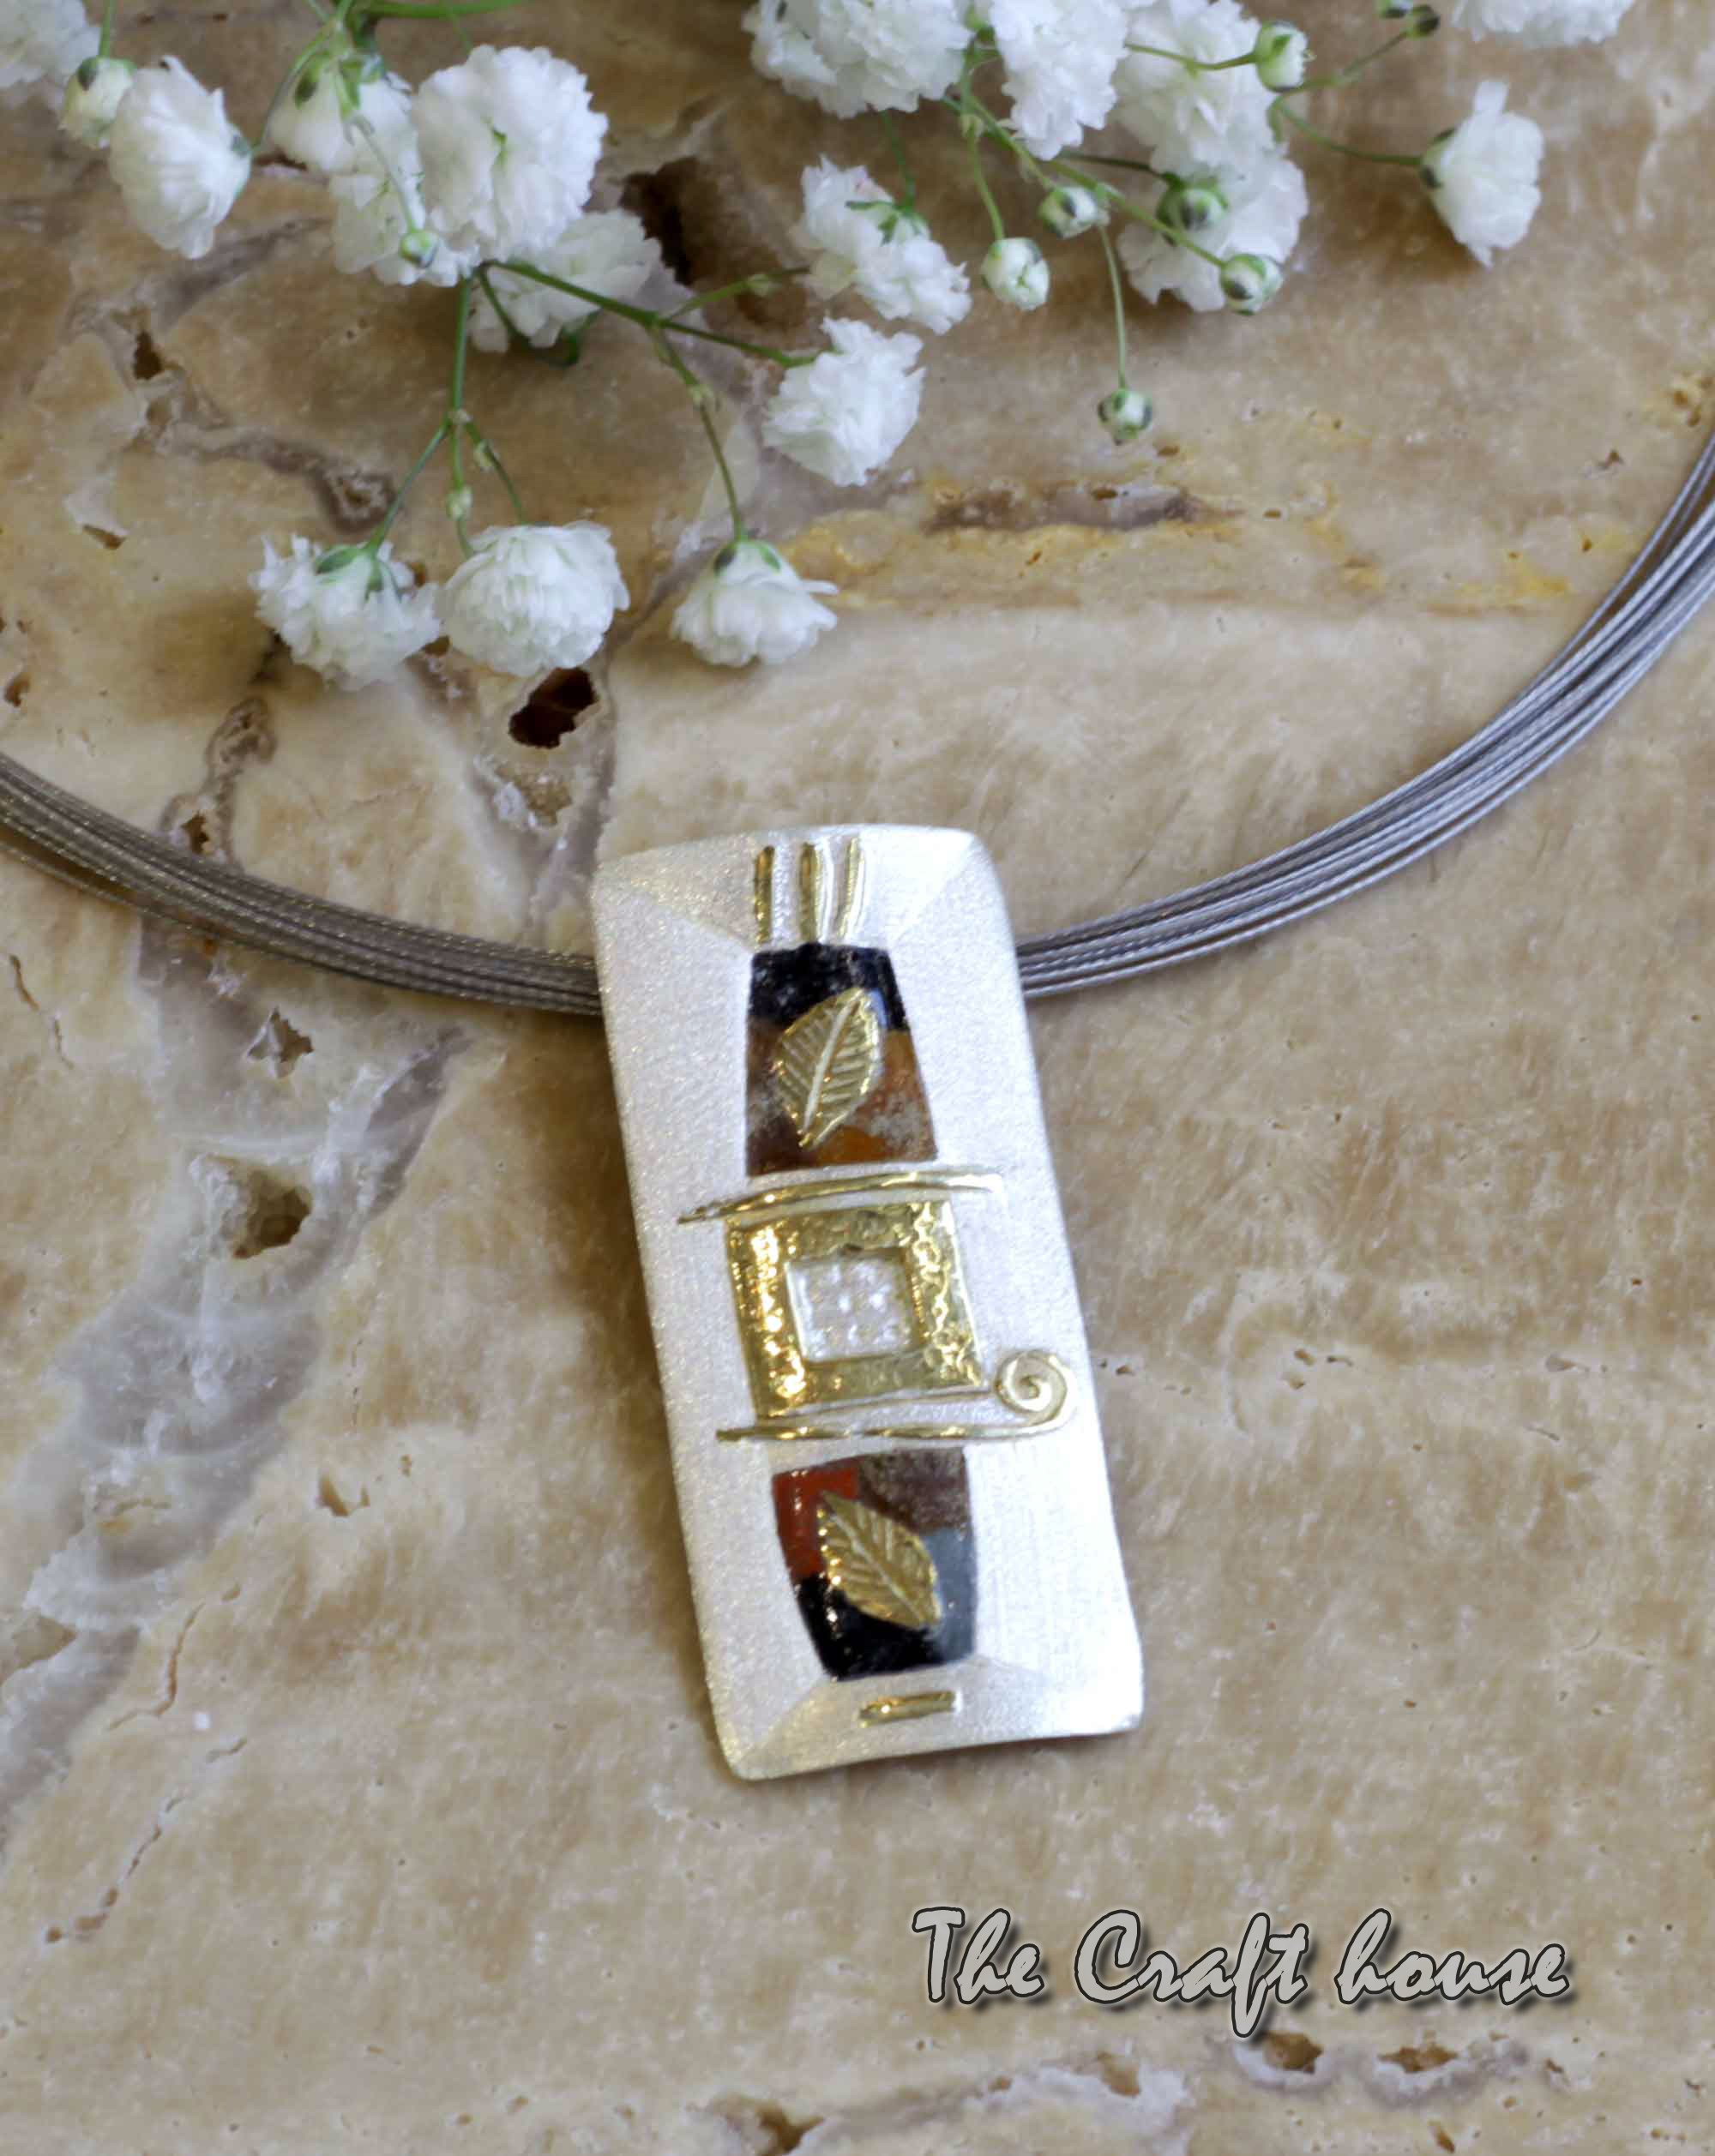 Silver necklace with enamel and gold-plating